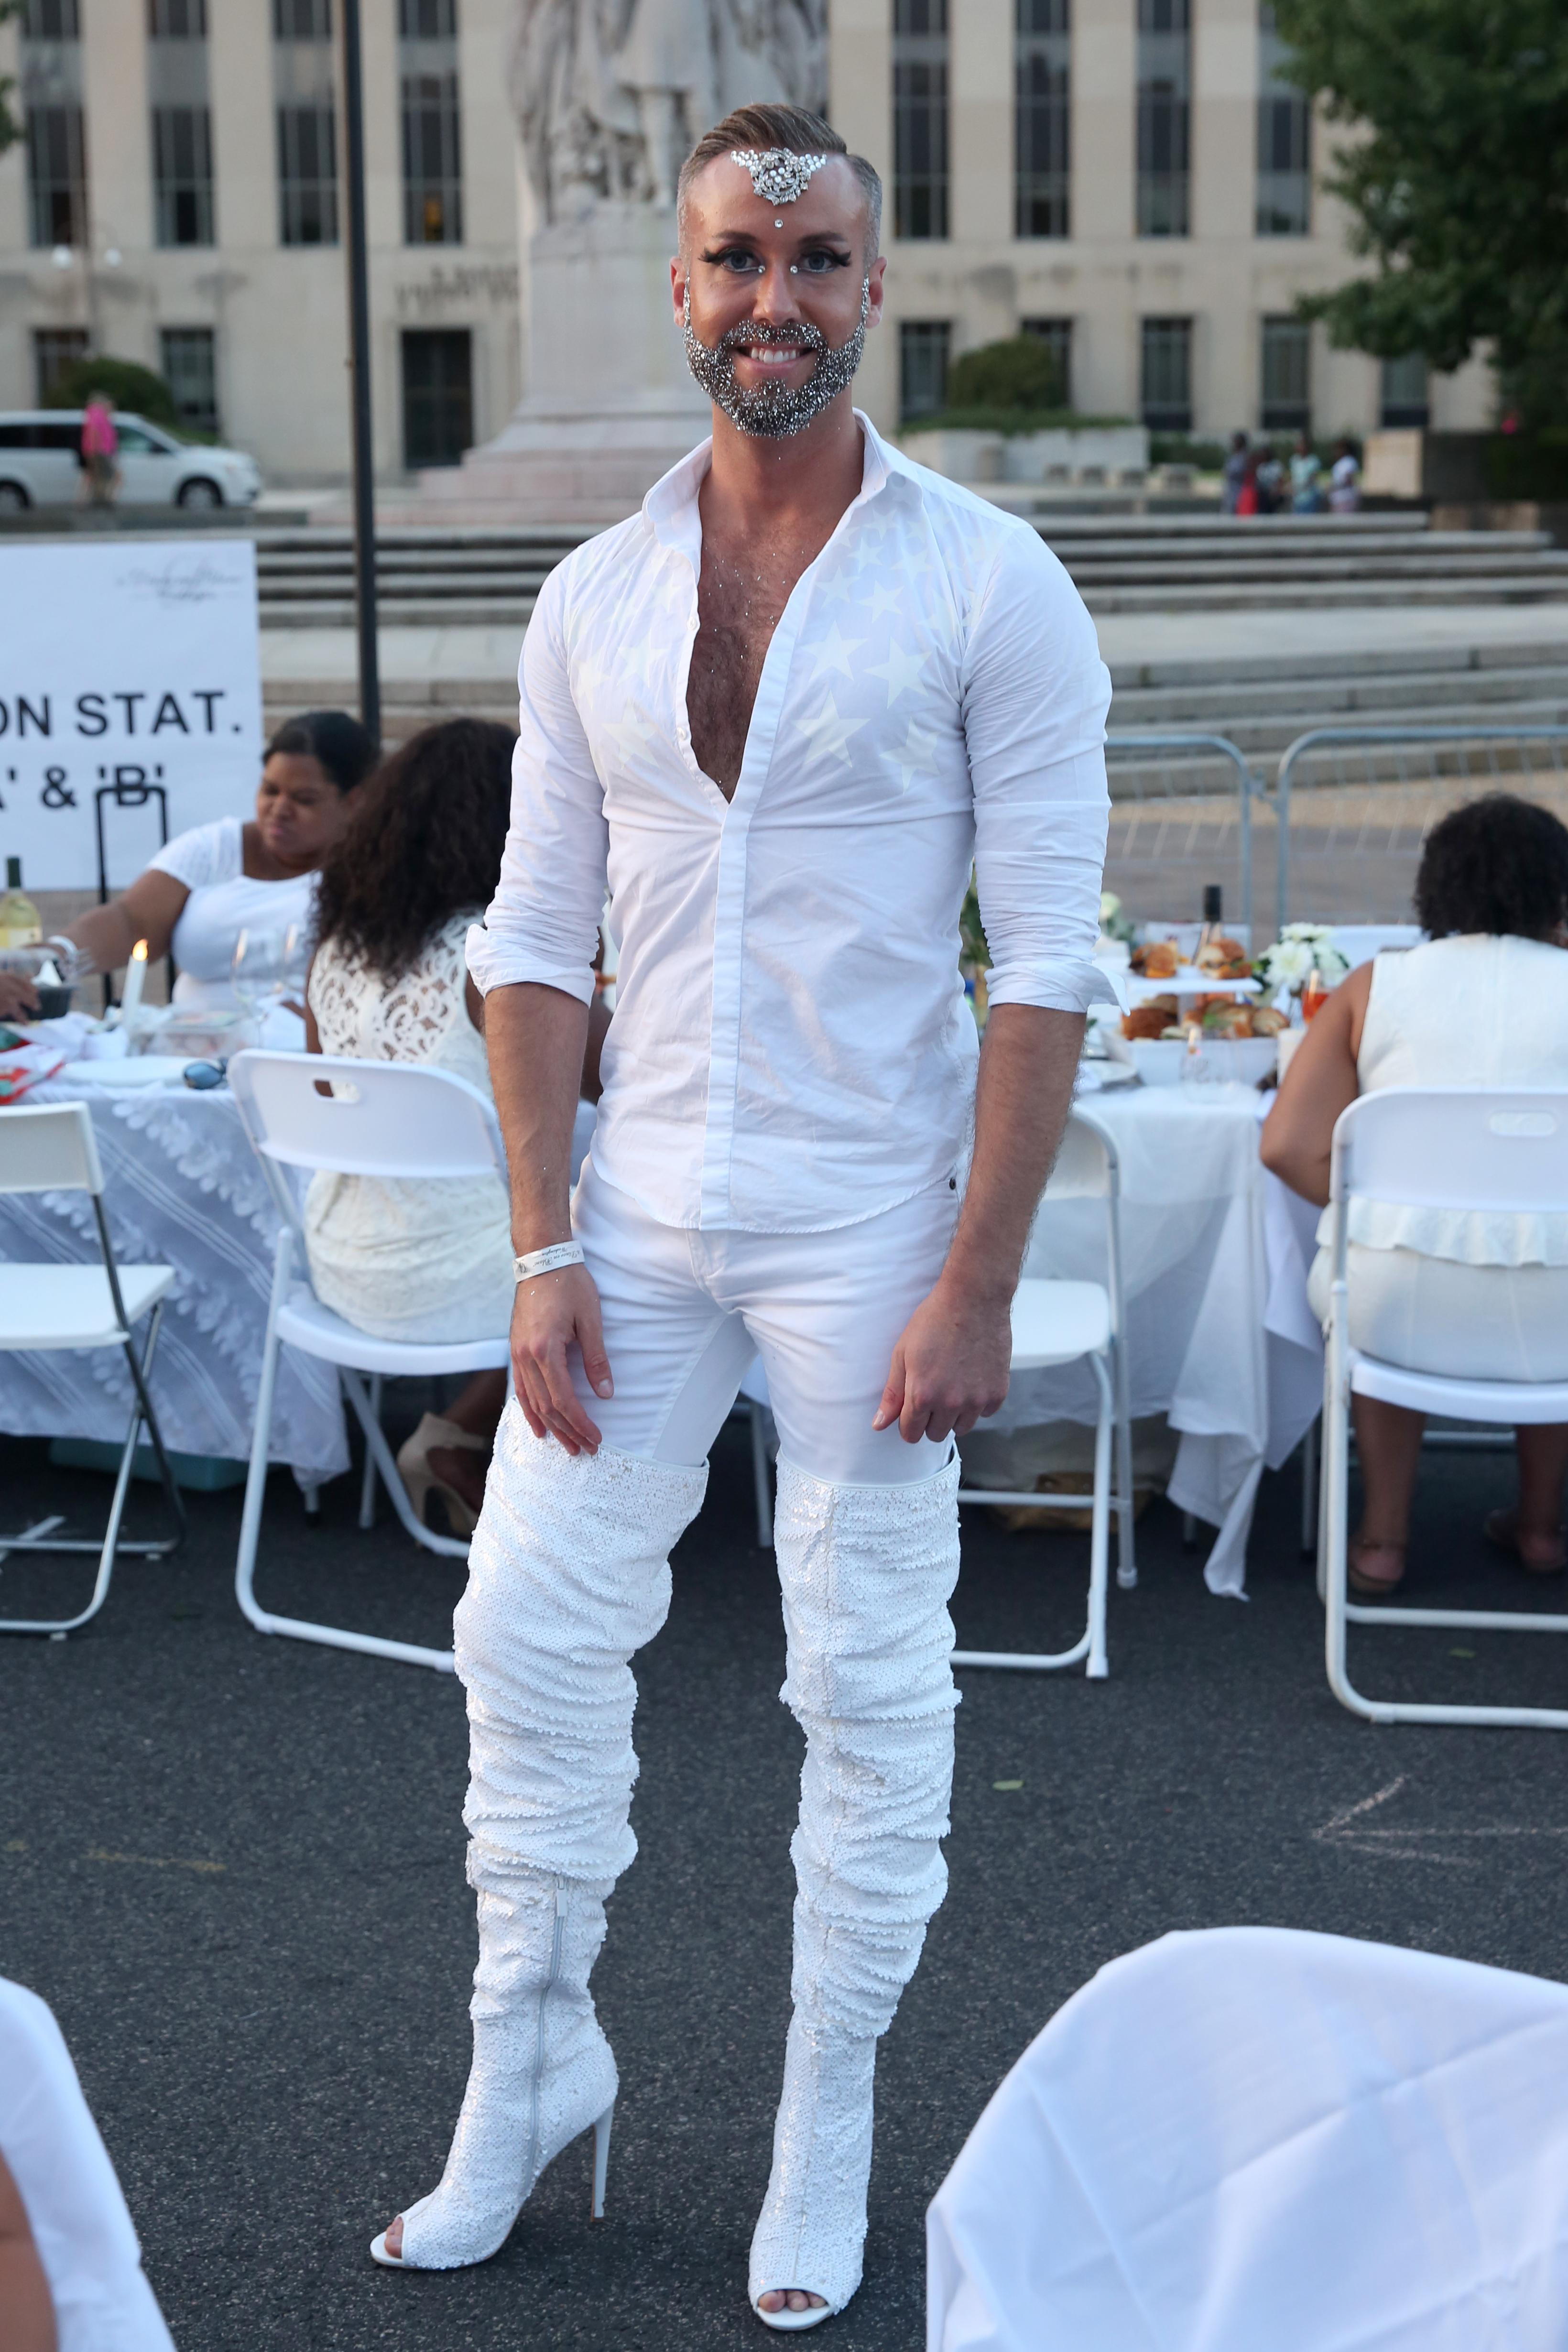 Justin McCown could was graceful and fabulous as he strutted around Diner en Blanc { }in those heels!{ }Is glitter envy a thing? Because we're pretty sure we have it!{ } (Amanda Andrade-Rhoades/DC Refined)